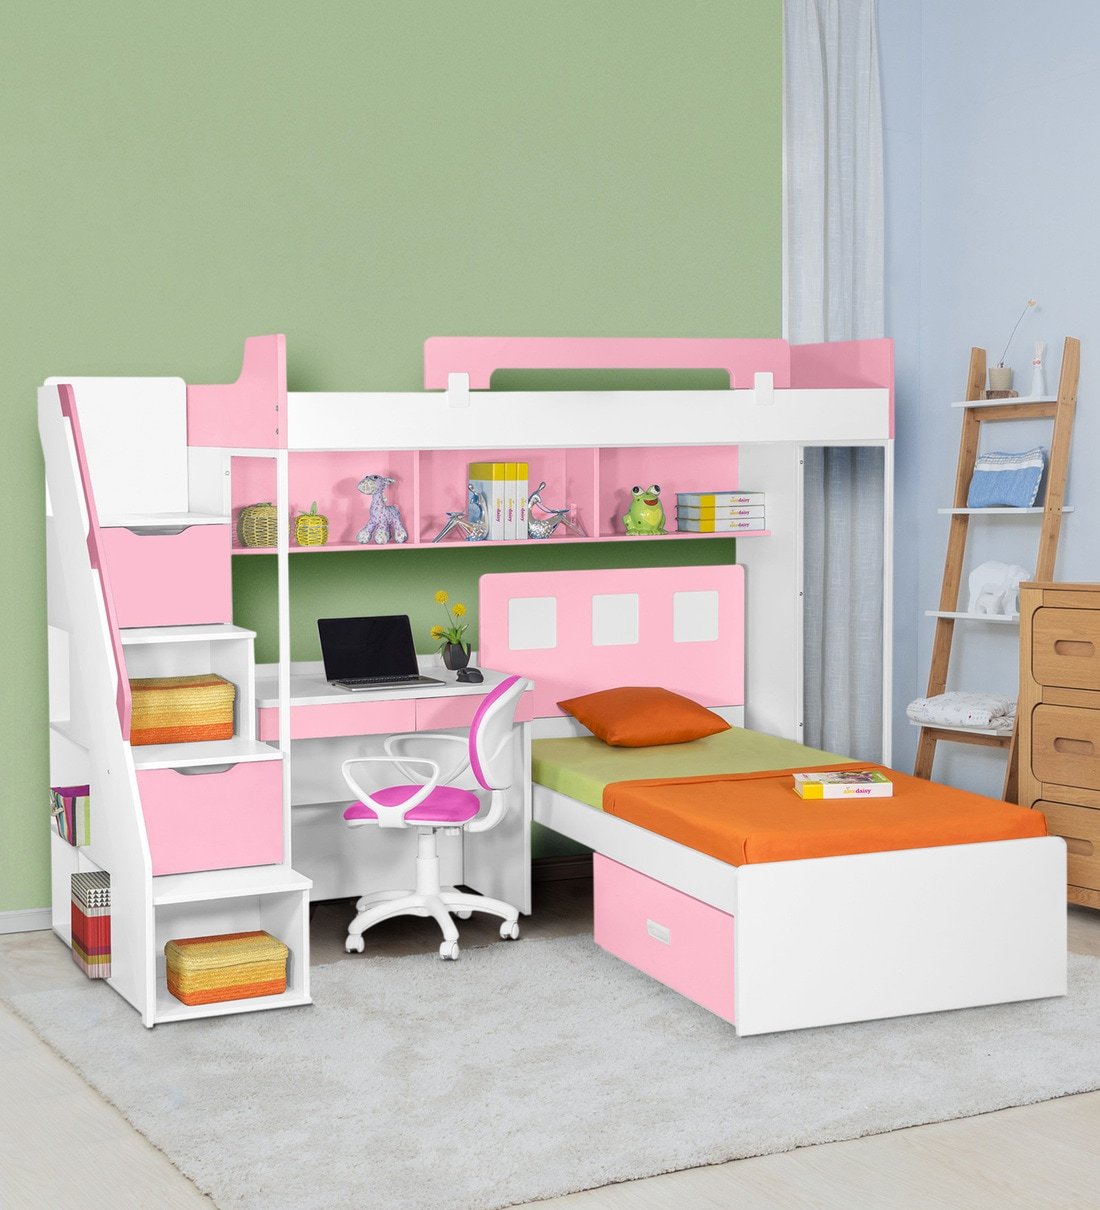 Picture of: Buy Milano Bunk Bed With Study Table In Pink By Alex Daisy Online Bed Units Kids Furniture Kids Furniture Pepperfry Product